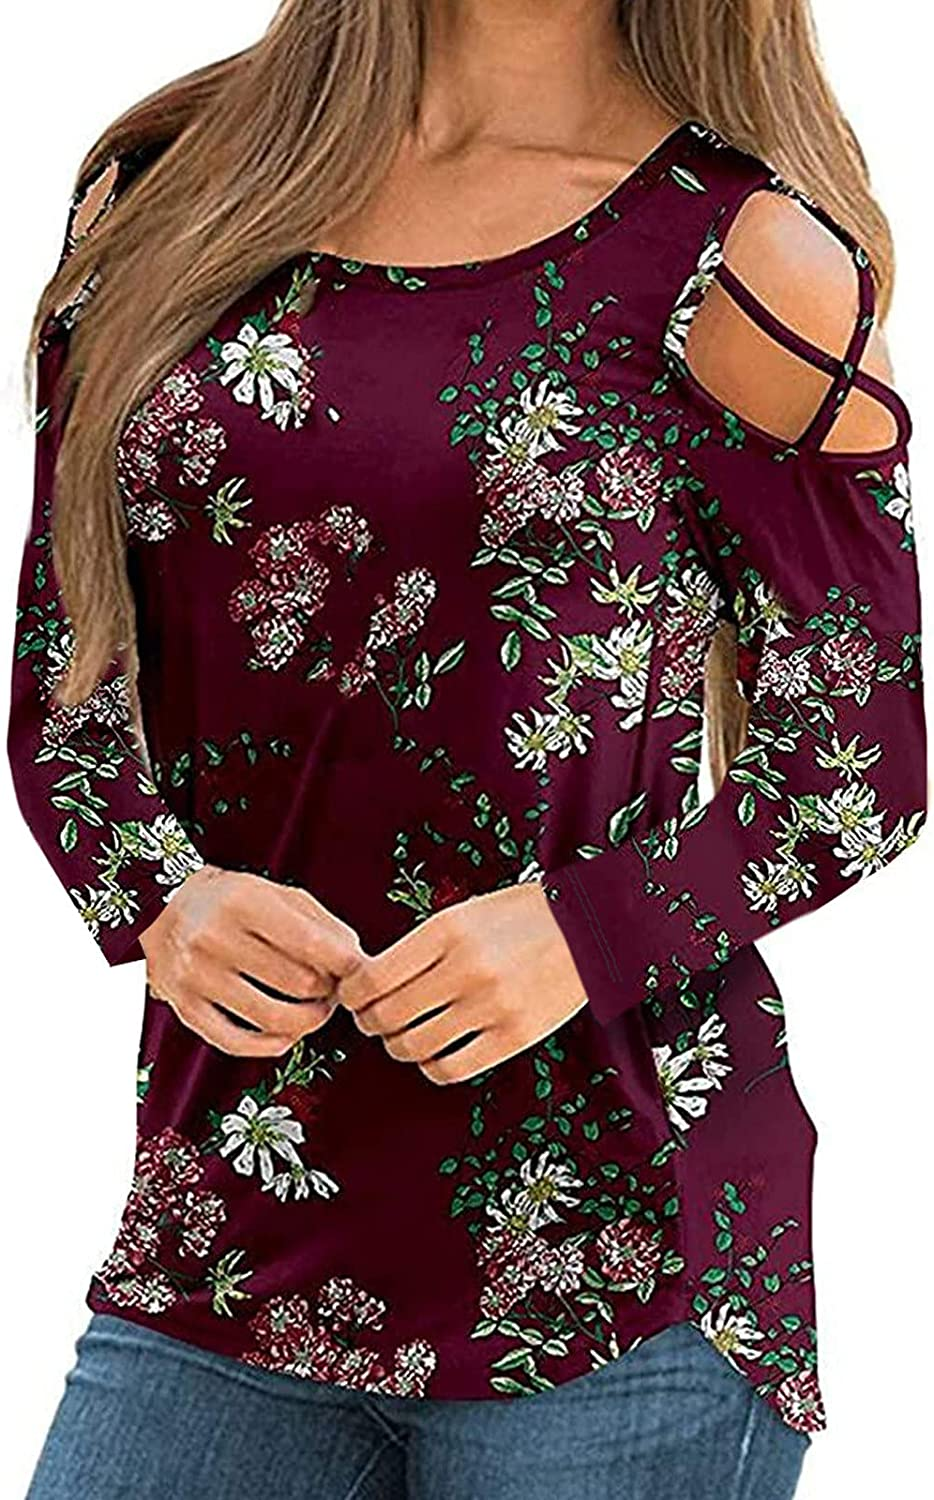 FABIURT Women Long Sleeve Tops, Womens Fall Floral Printed Cold Shoulder Long Sleeve Shirt Casual Loose Pullover Blouses